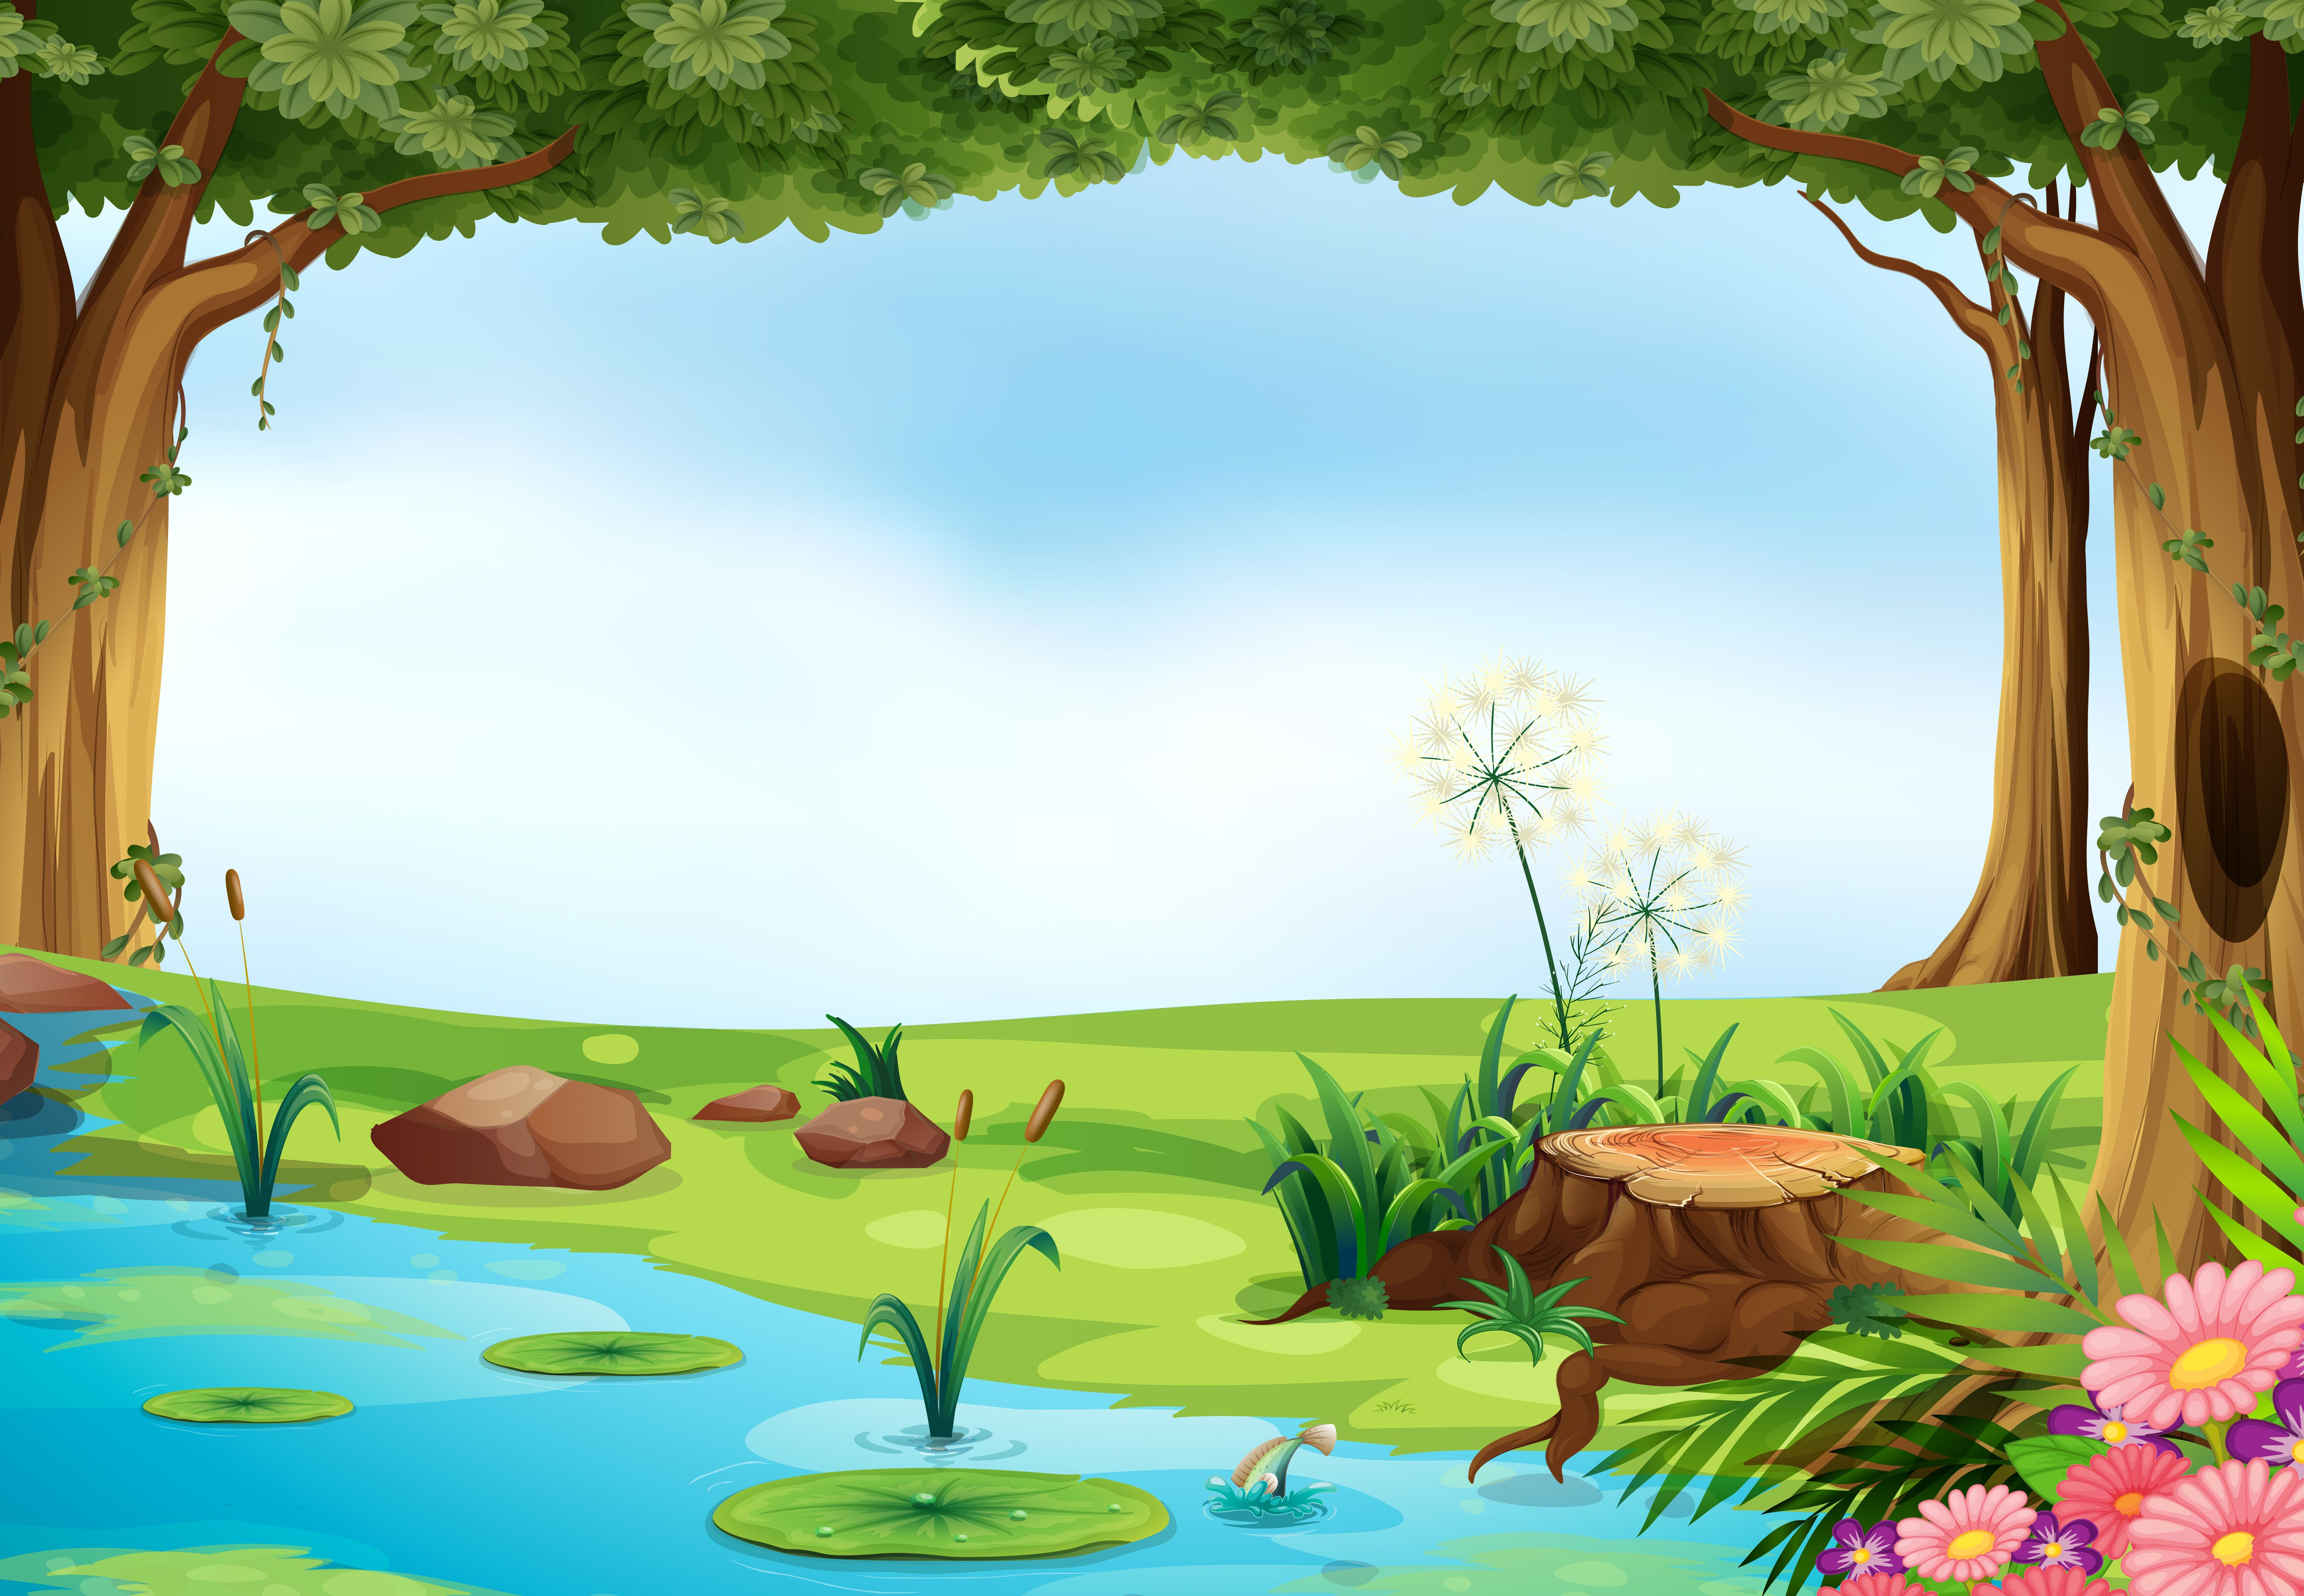 Pin By Roshida Mohamed Aris On Banner Artsy Background Colorful Landscape Spring Painting